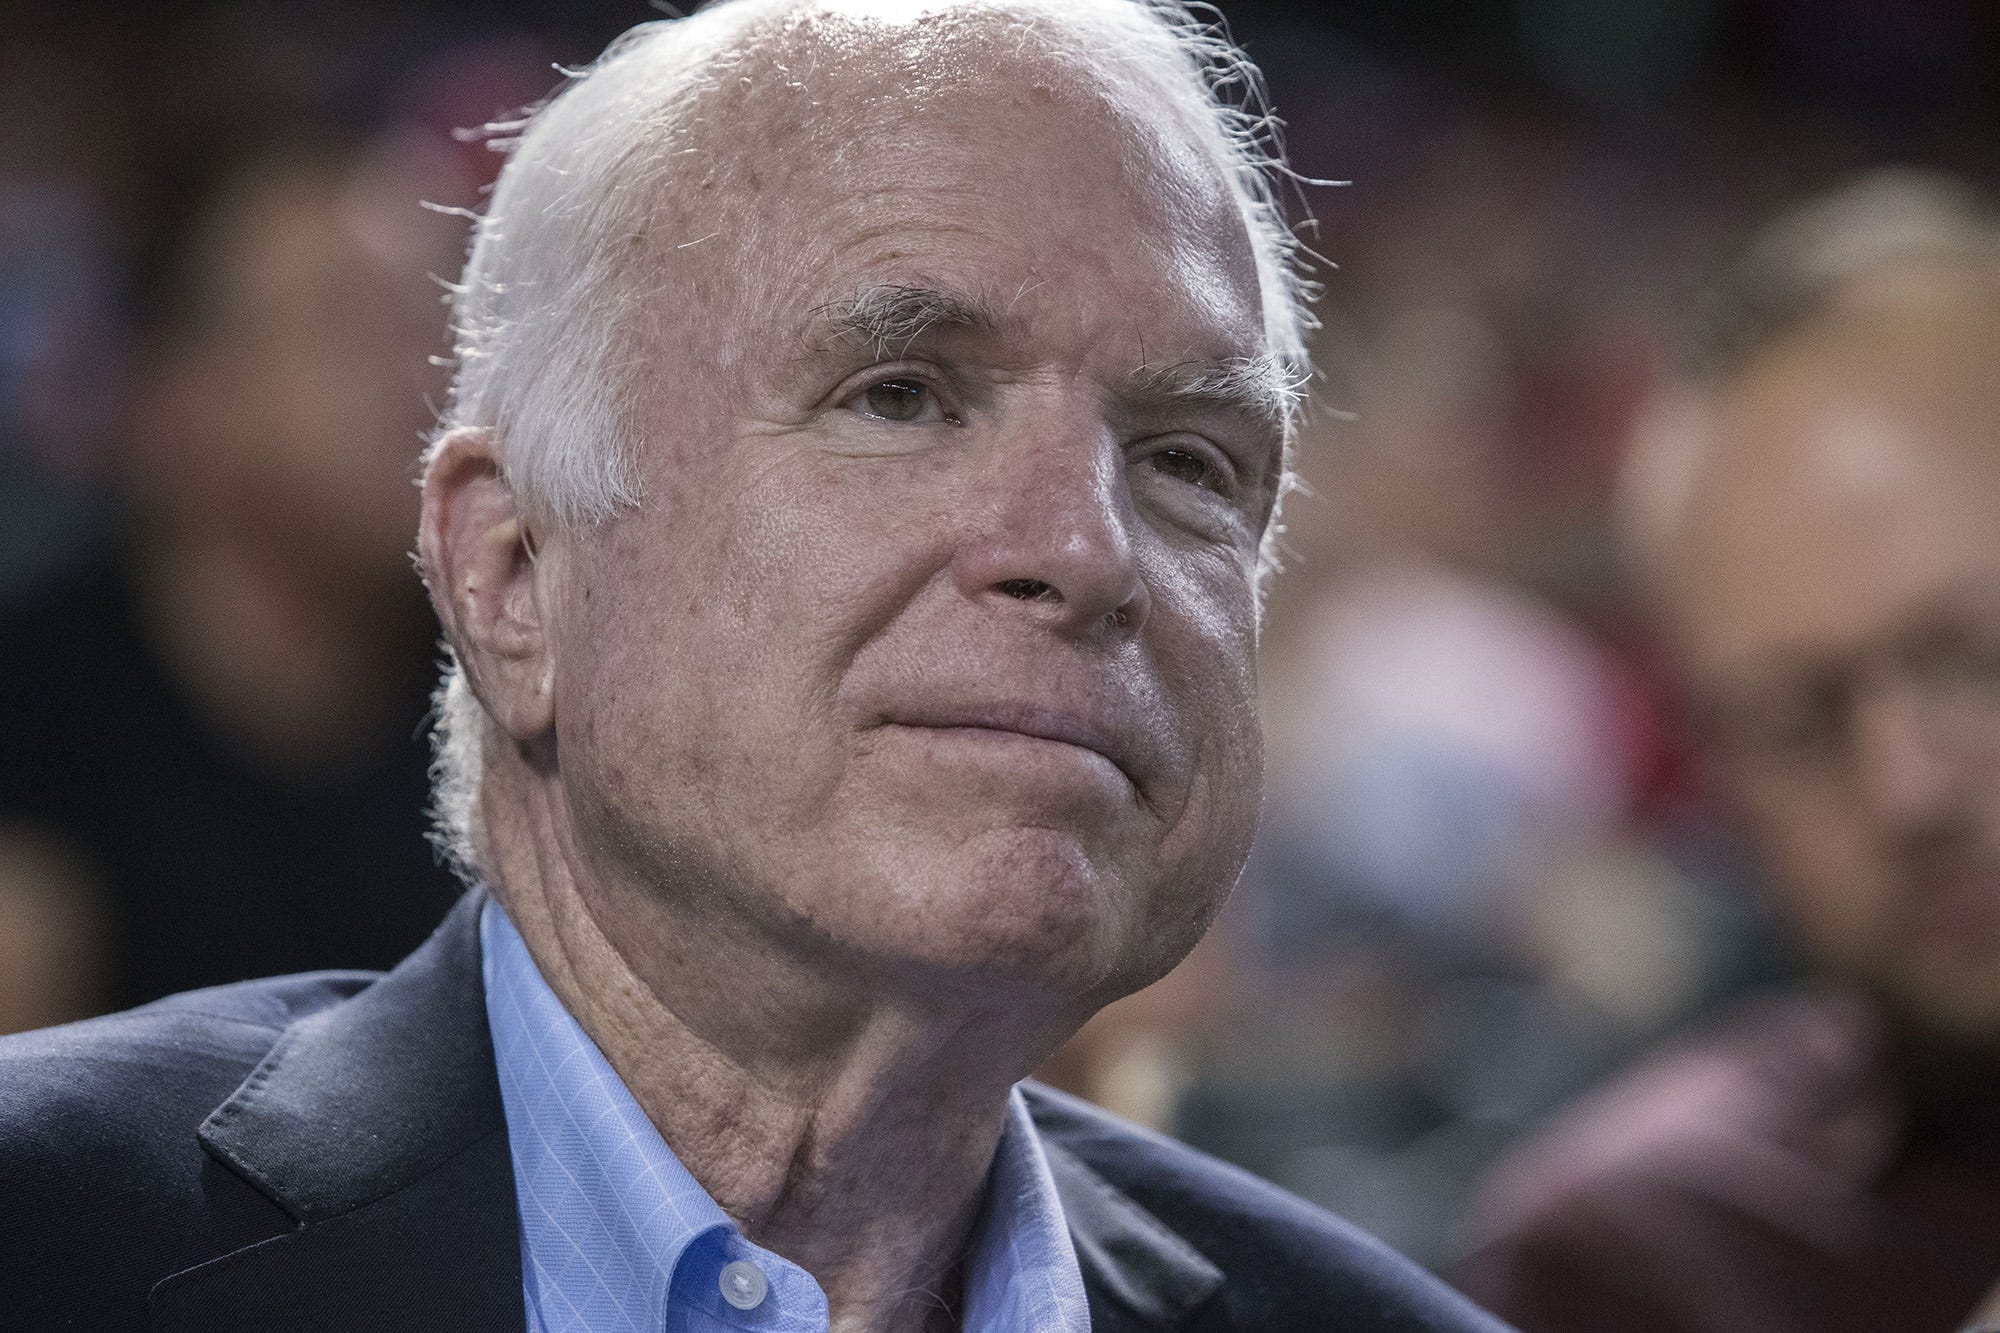 John McCain, stormy and unchangeable, taught us to never give in to torture